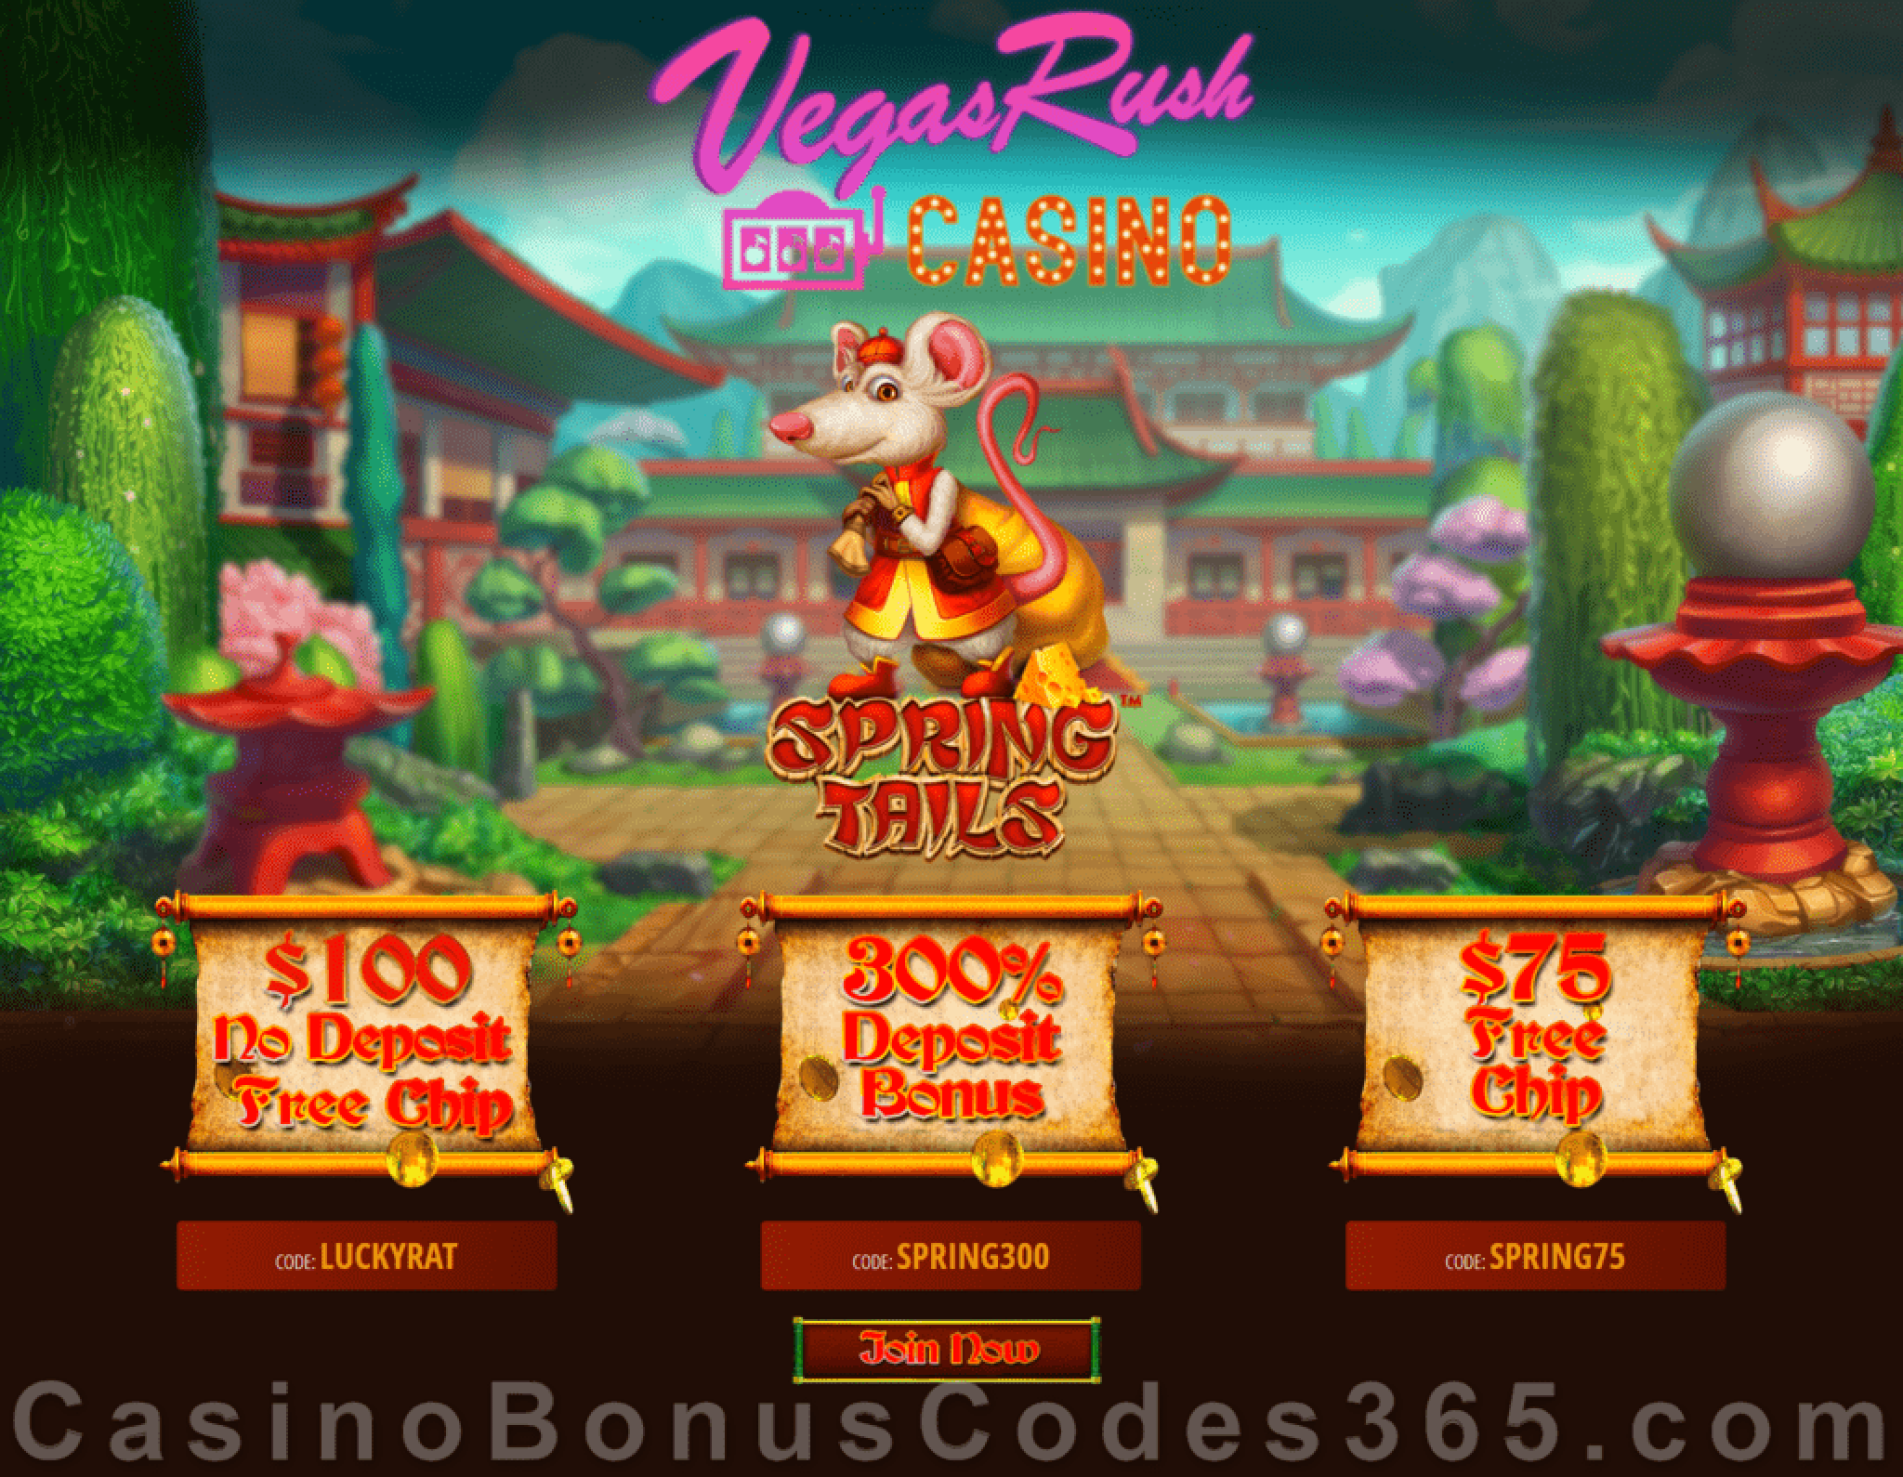 Vegas Rush Casino $175 FREE Chip plus 300% Match Bonus Spring Tails Special May Special Offer Betsoft Spring Tails